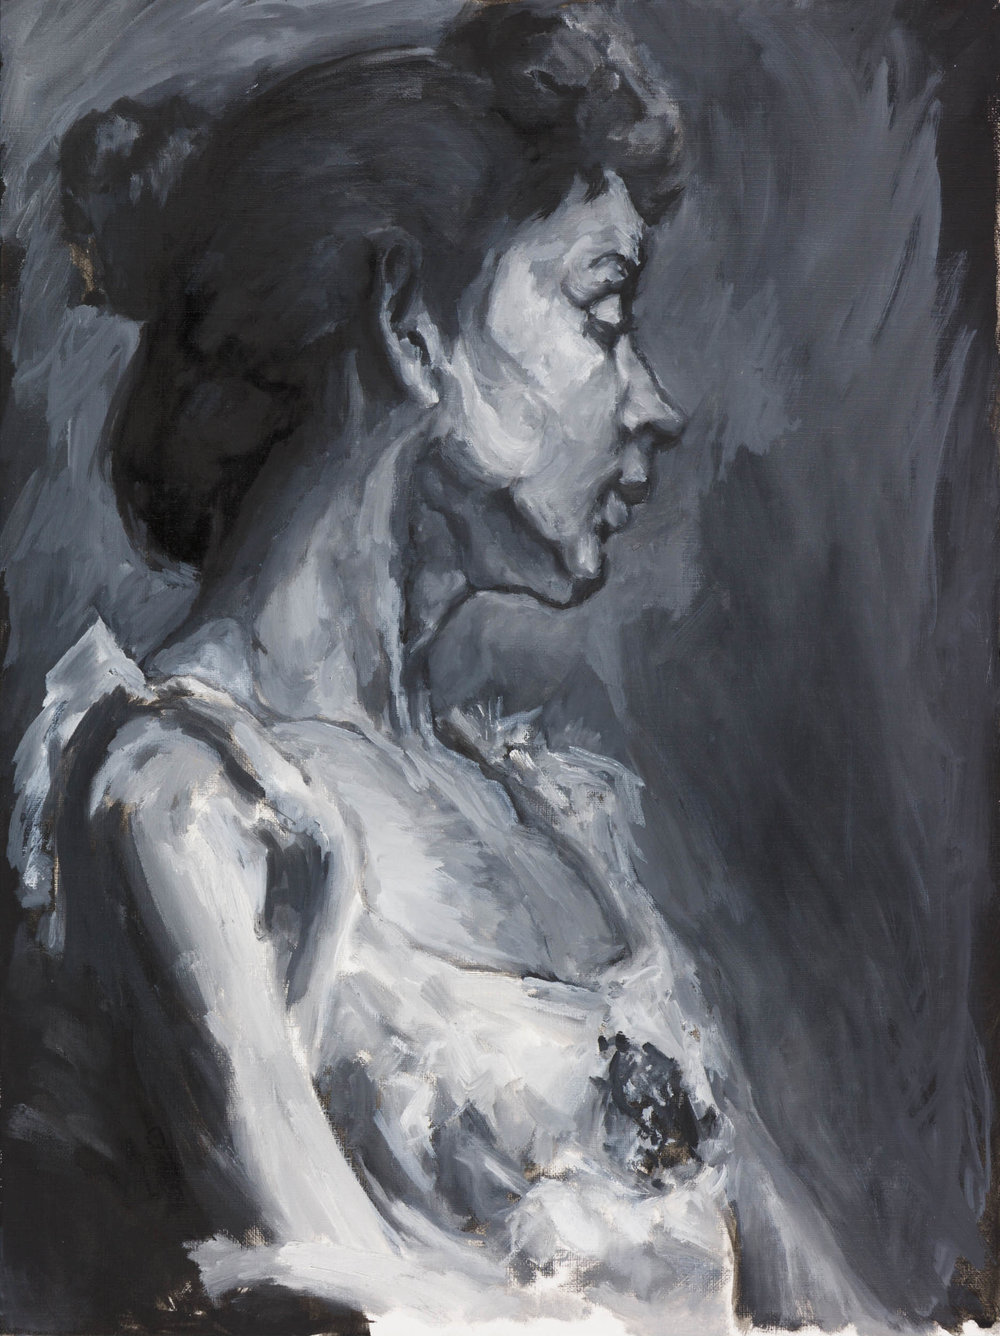 B&W Study of Henry Ossawa Tanner's Portrait of the Artist's Wife